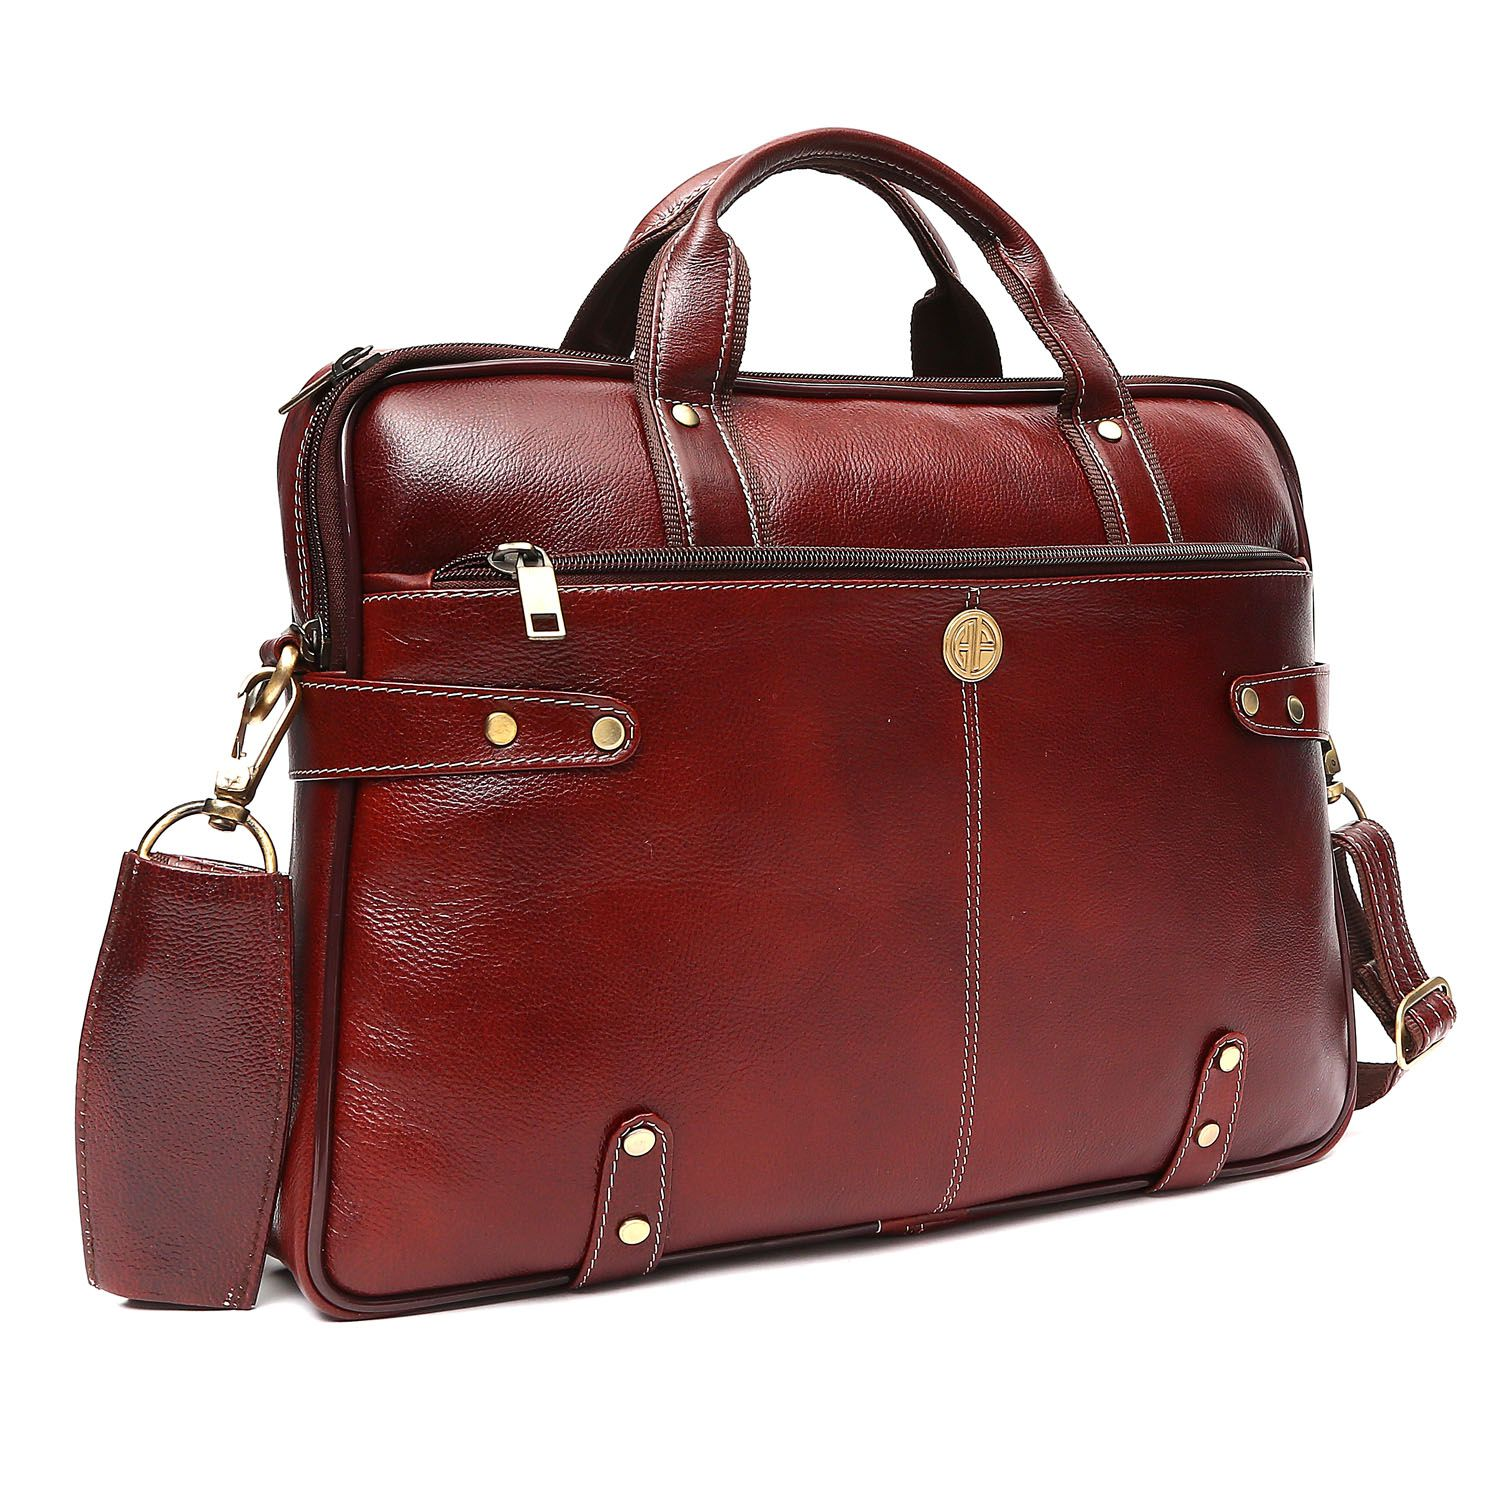 HAMMONDS FLYCATCHER Brown Laptop Bags - Buy HAMMONDS FLYCATCHER Brown Laptop  Bags Online at Low Price - Snapdeal 9a95227823d3f